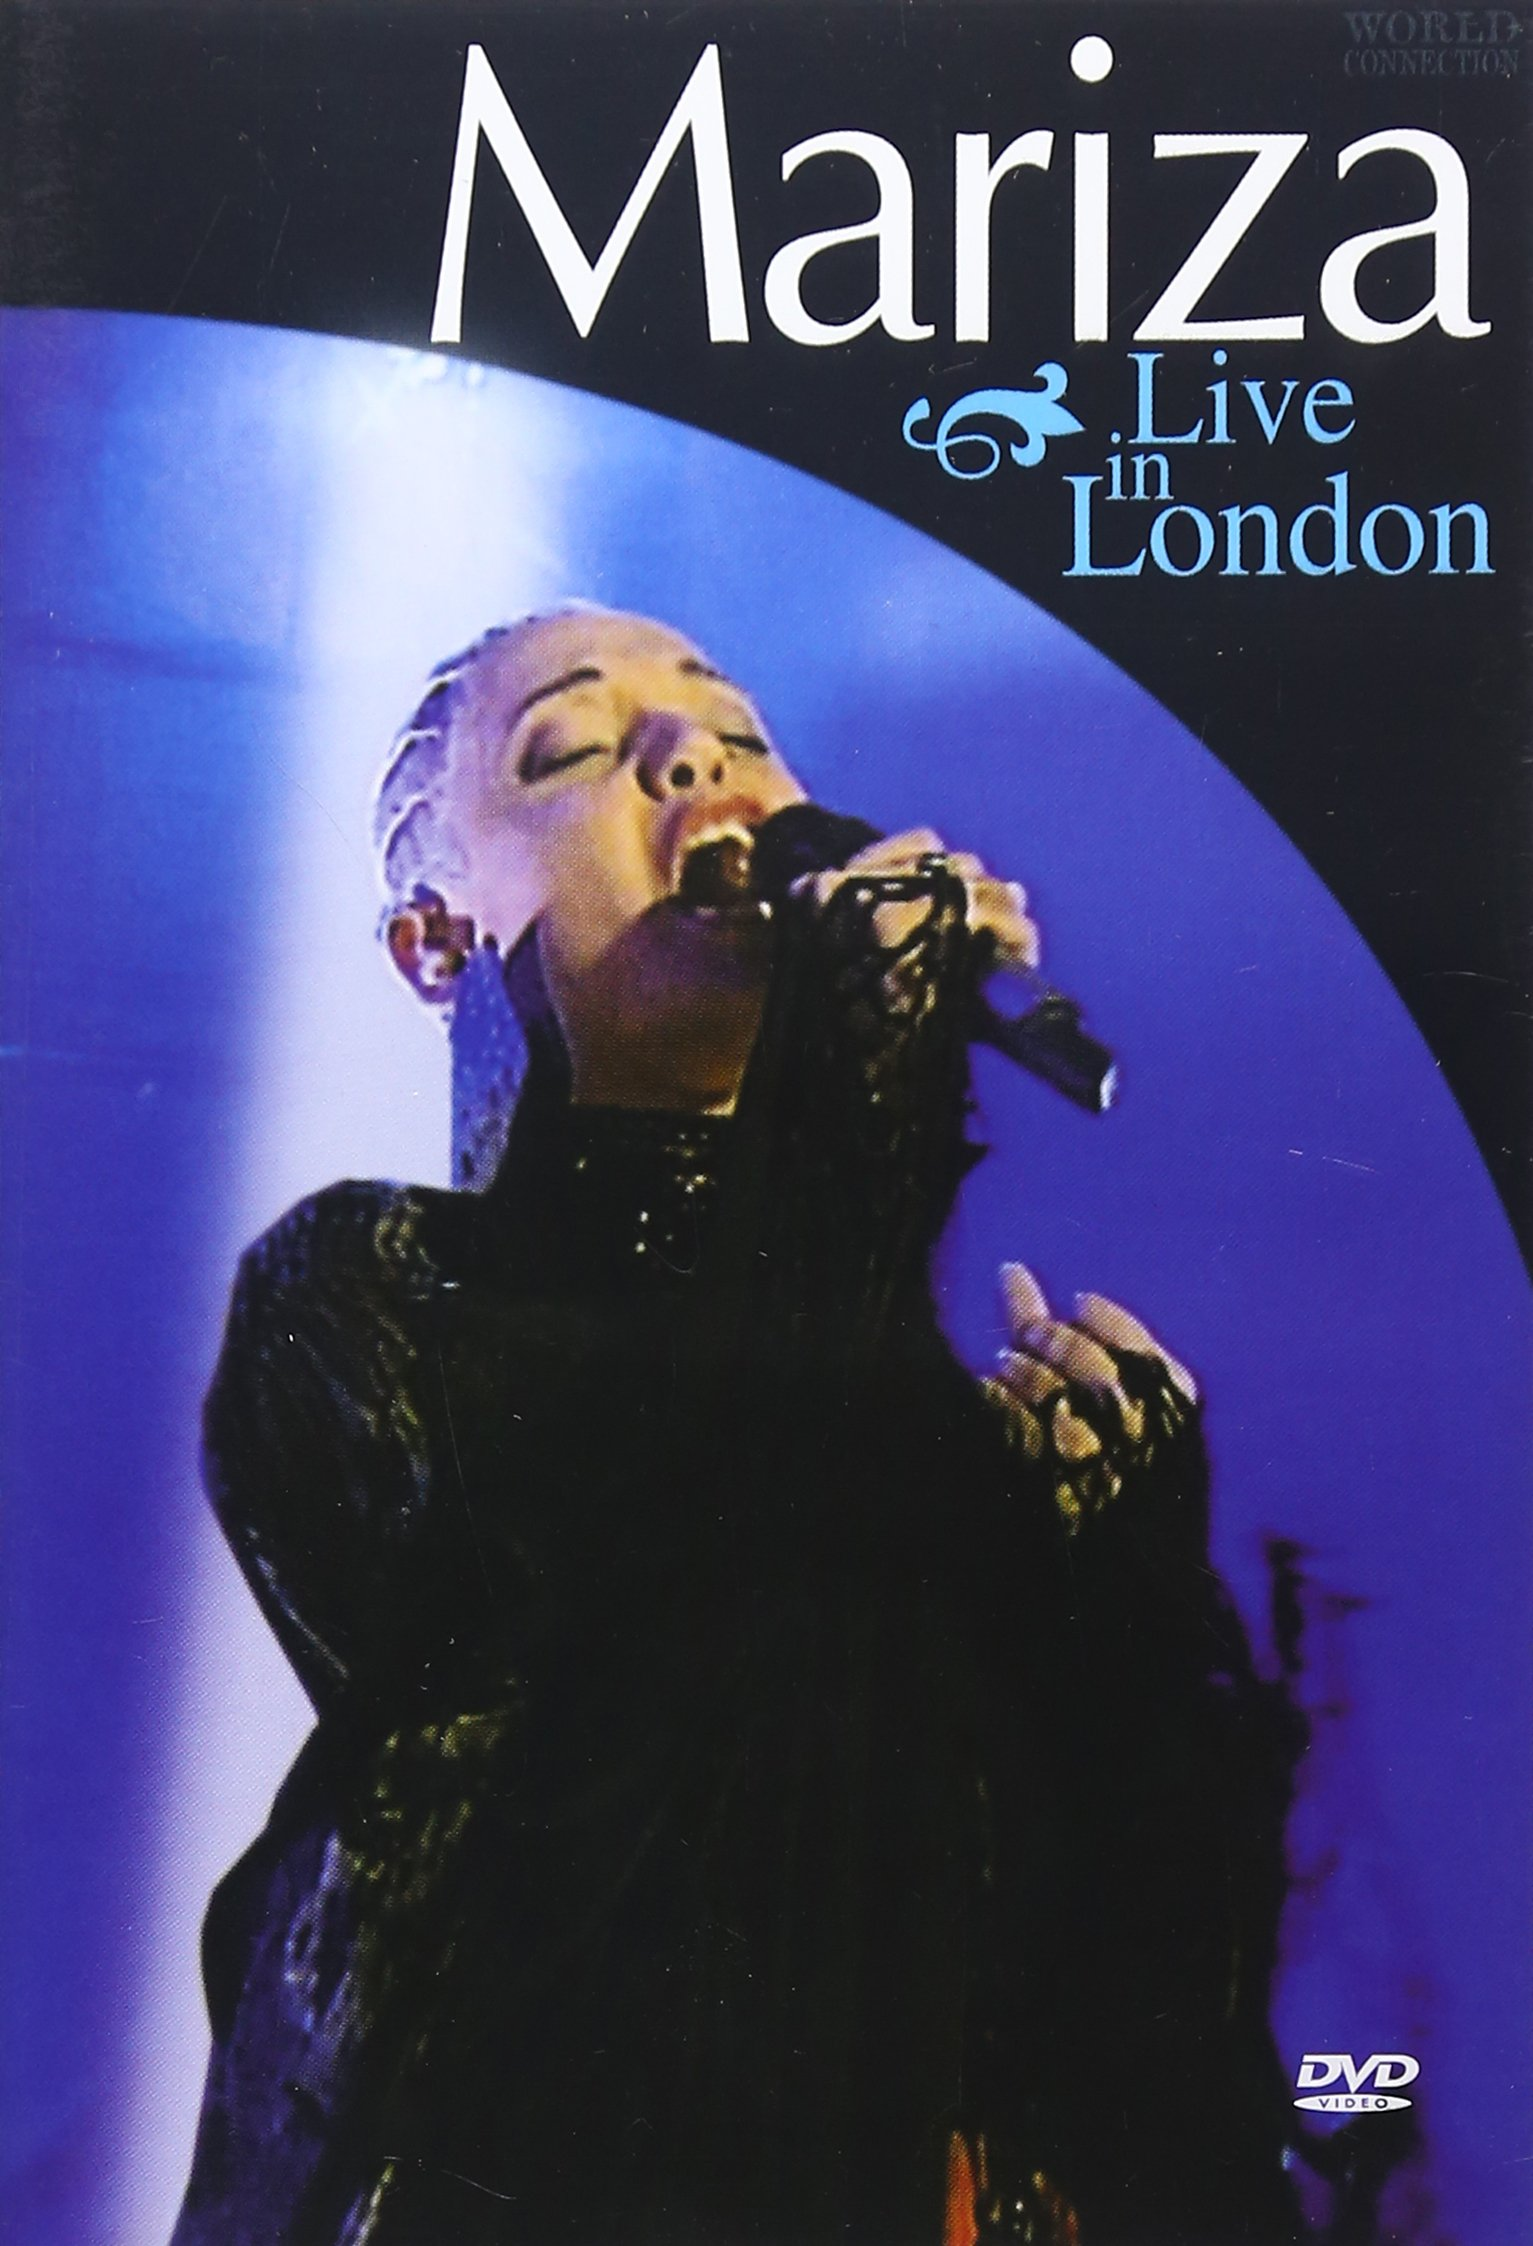 DVD : Mariza - Live In London (DVD)